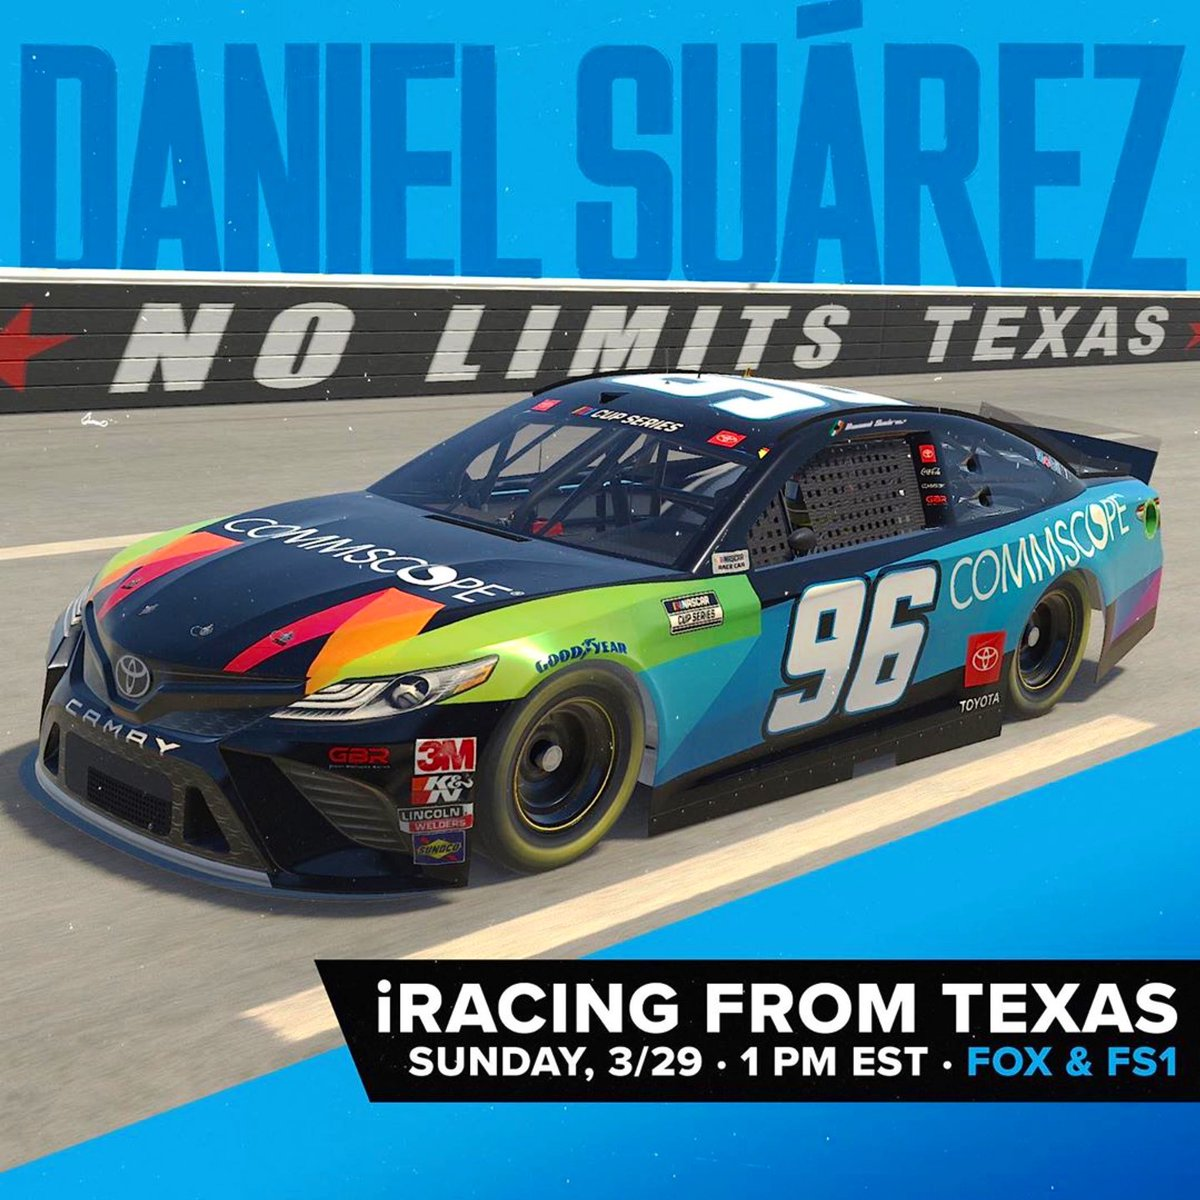 Let's do this ✊🏼🎮  #Repost @gauntbrothersracing ・・・ We're thrilled for @daniel_suarezg to race in the eNASCAR #iRacing #ProInvitationalSeries this Sunday from virtual @TXMotorSpeedway in the @CommScope #Camry! This will be his first-ever iRacing event.  #NASCAR   #TeamToyota